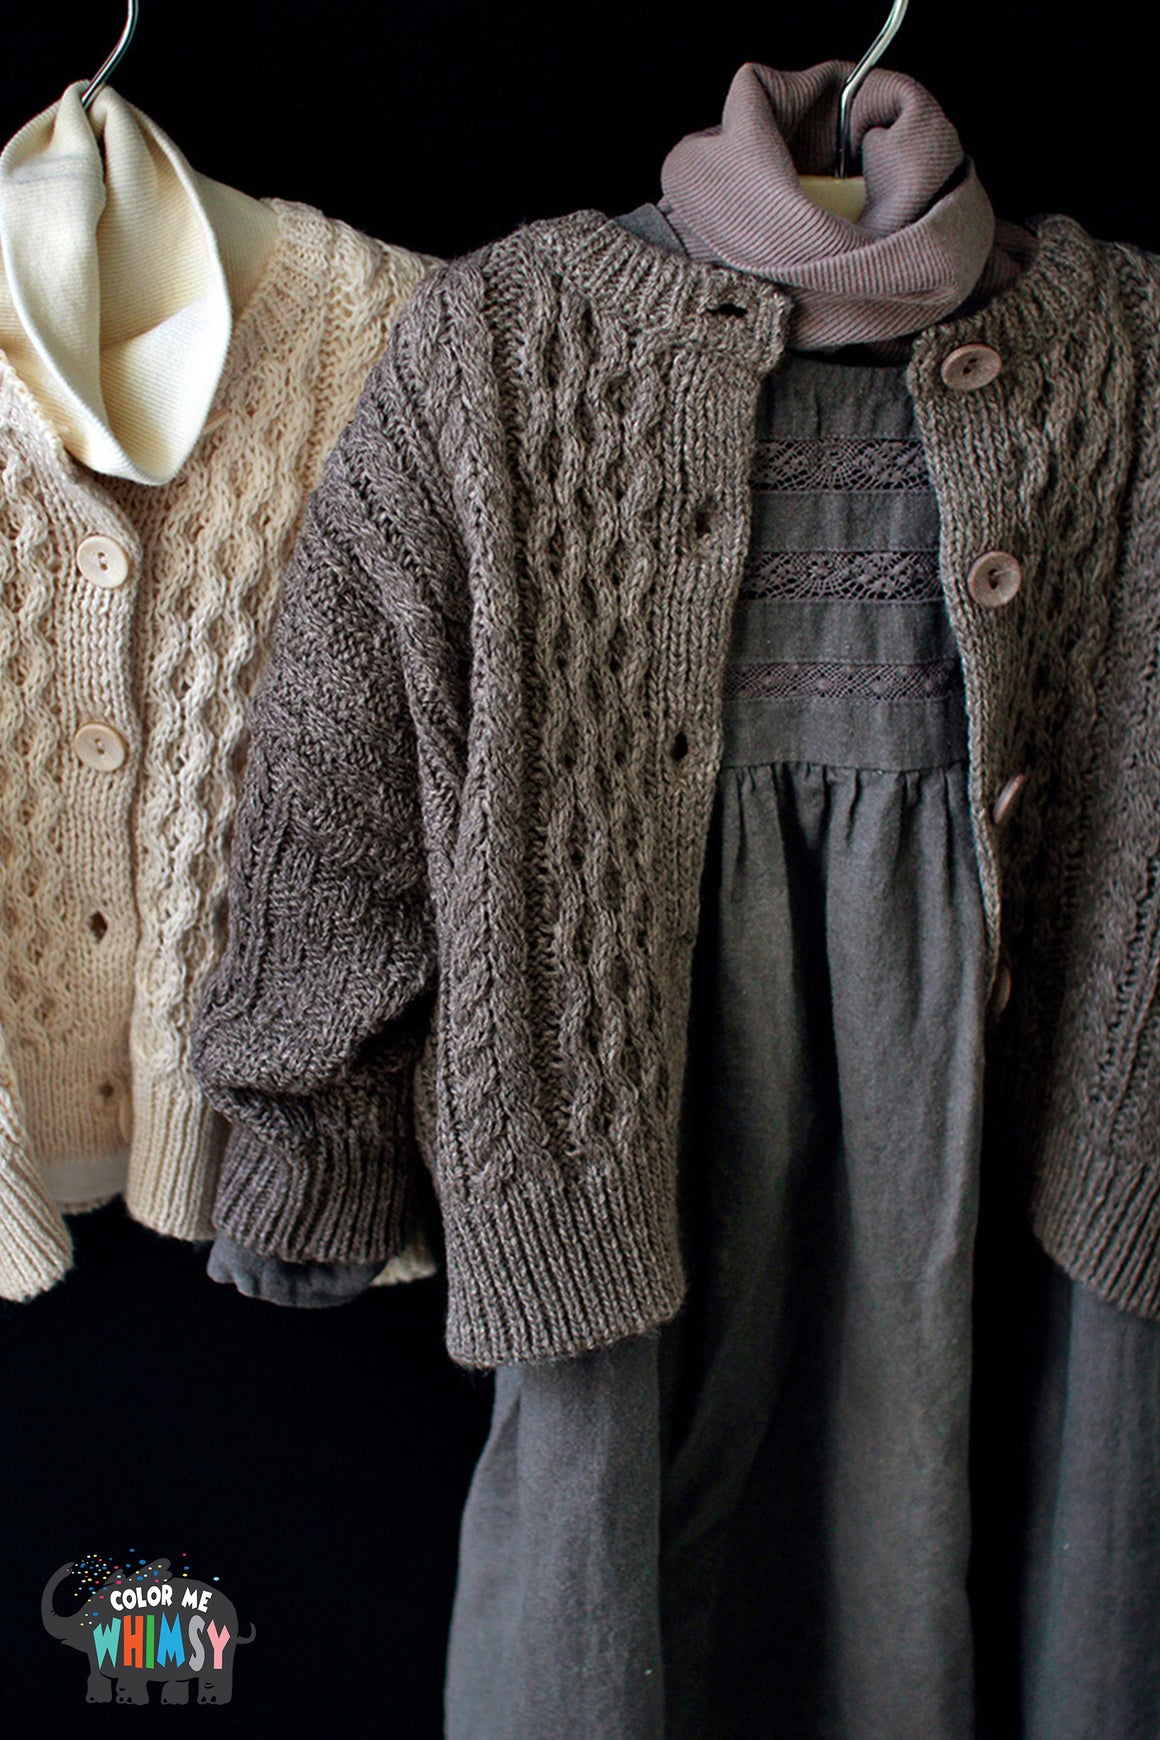 SCON Rachal Knit Cardigan at Color Me WHIMSY hip kid's fashion ethically made in south korea